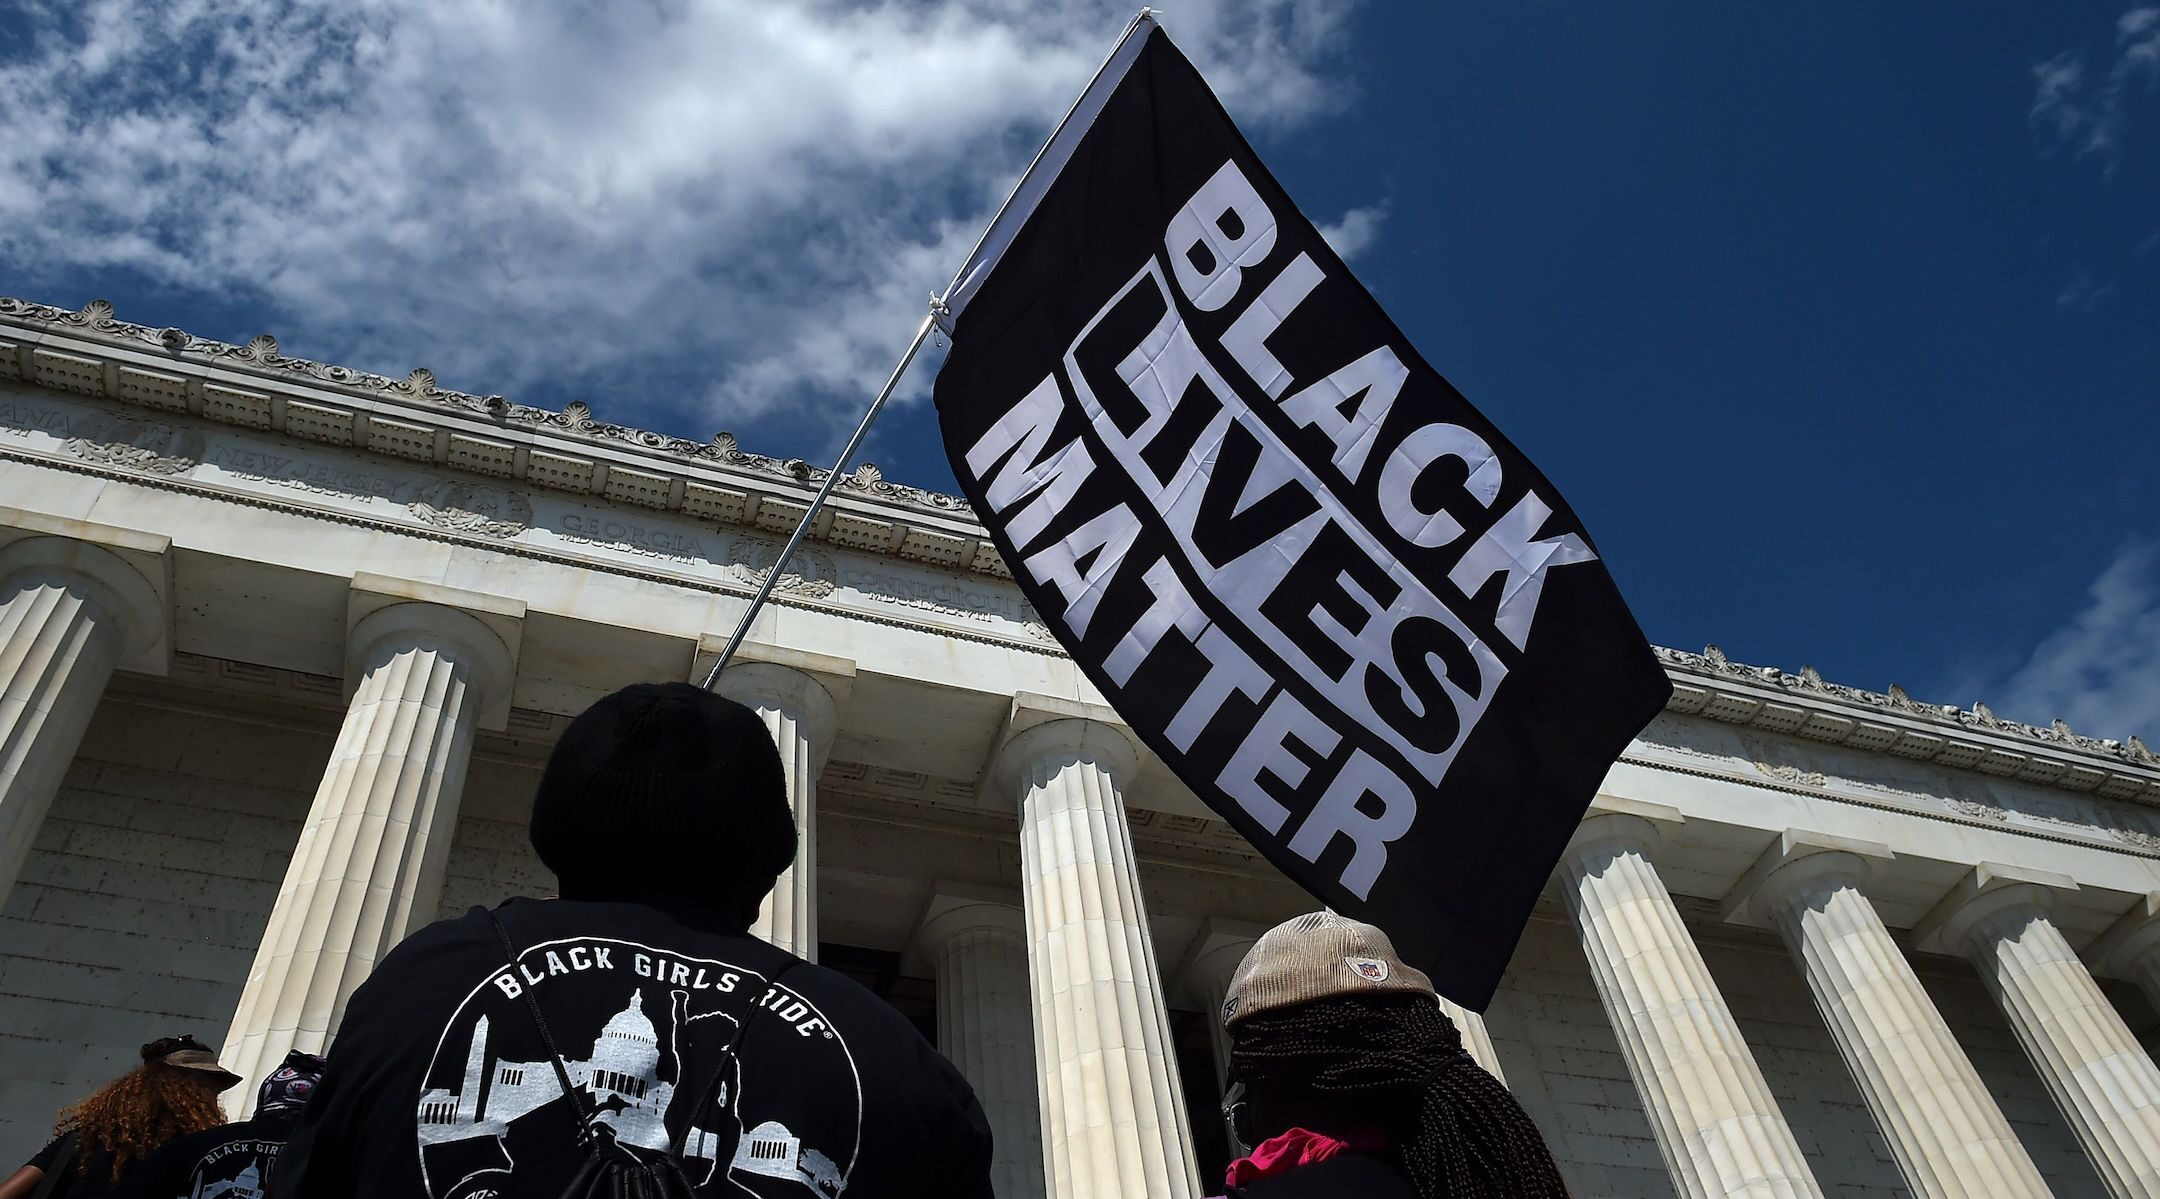 """A person holds a Black Lives Matter flag during the """"Commitment March: Get Your Knee Off Our Necks"""" protest against racism and police brutality, at the Lincoln Memorial in Washington, D.C., Aug. 28, 2020. (Photo/JTA-Olivier Douliery-Pool-AFP via Getty Images)"""